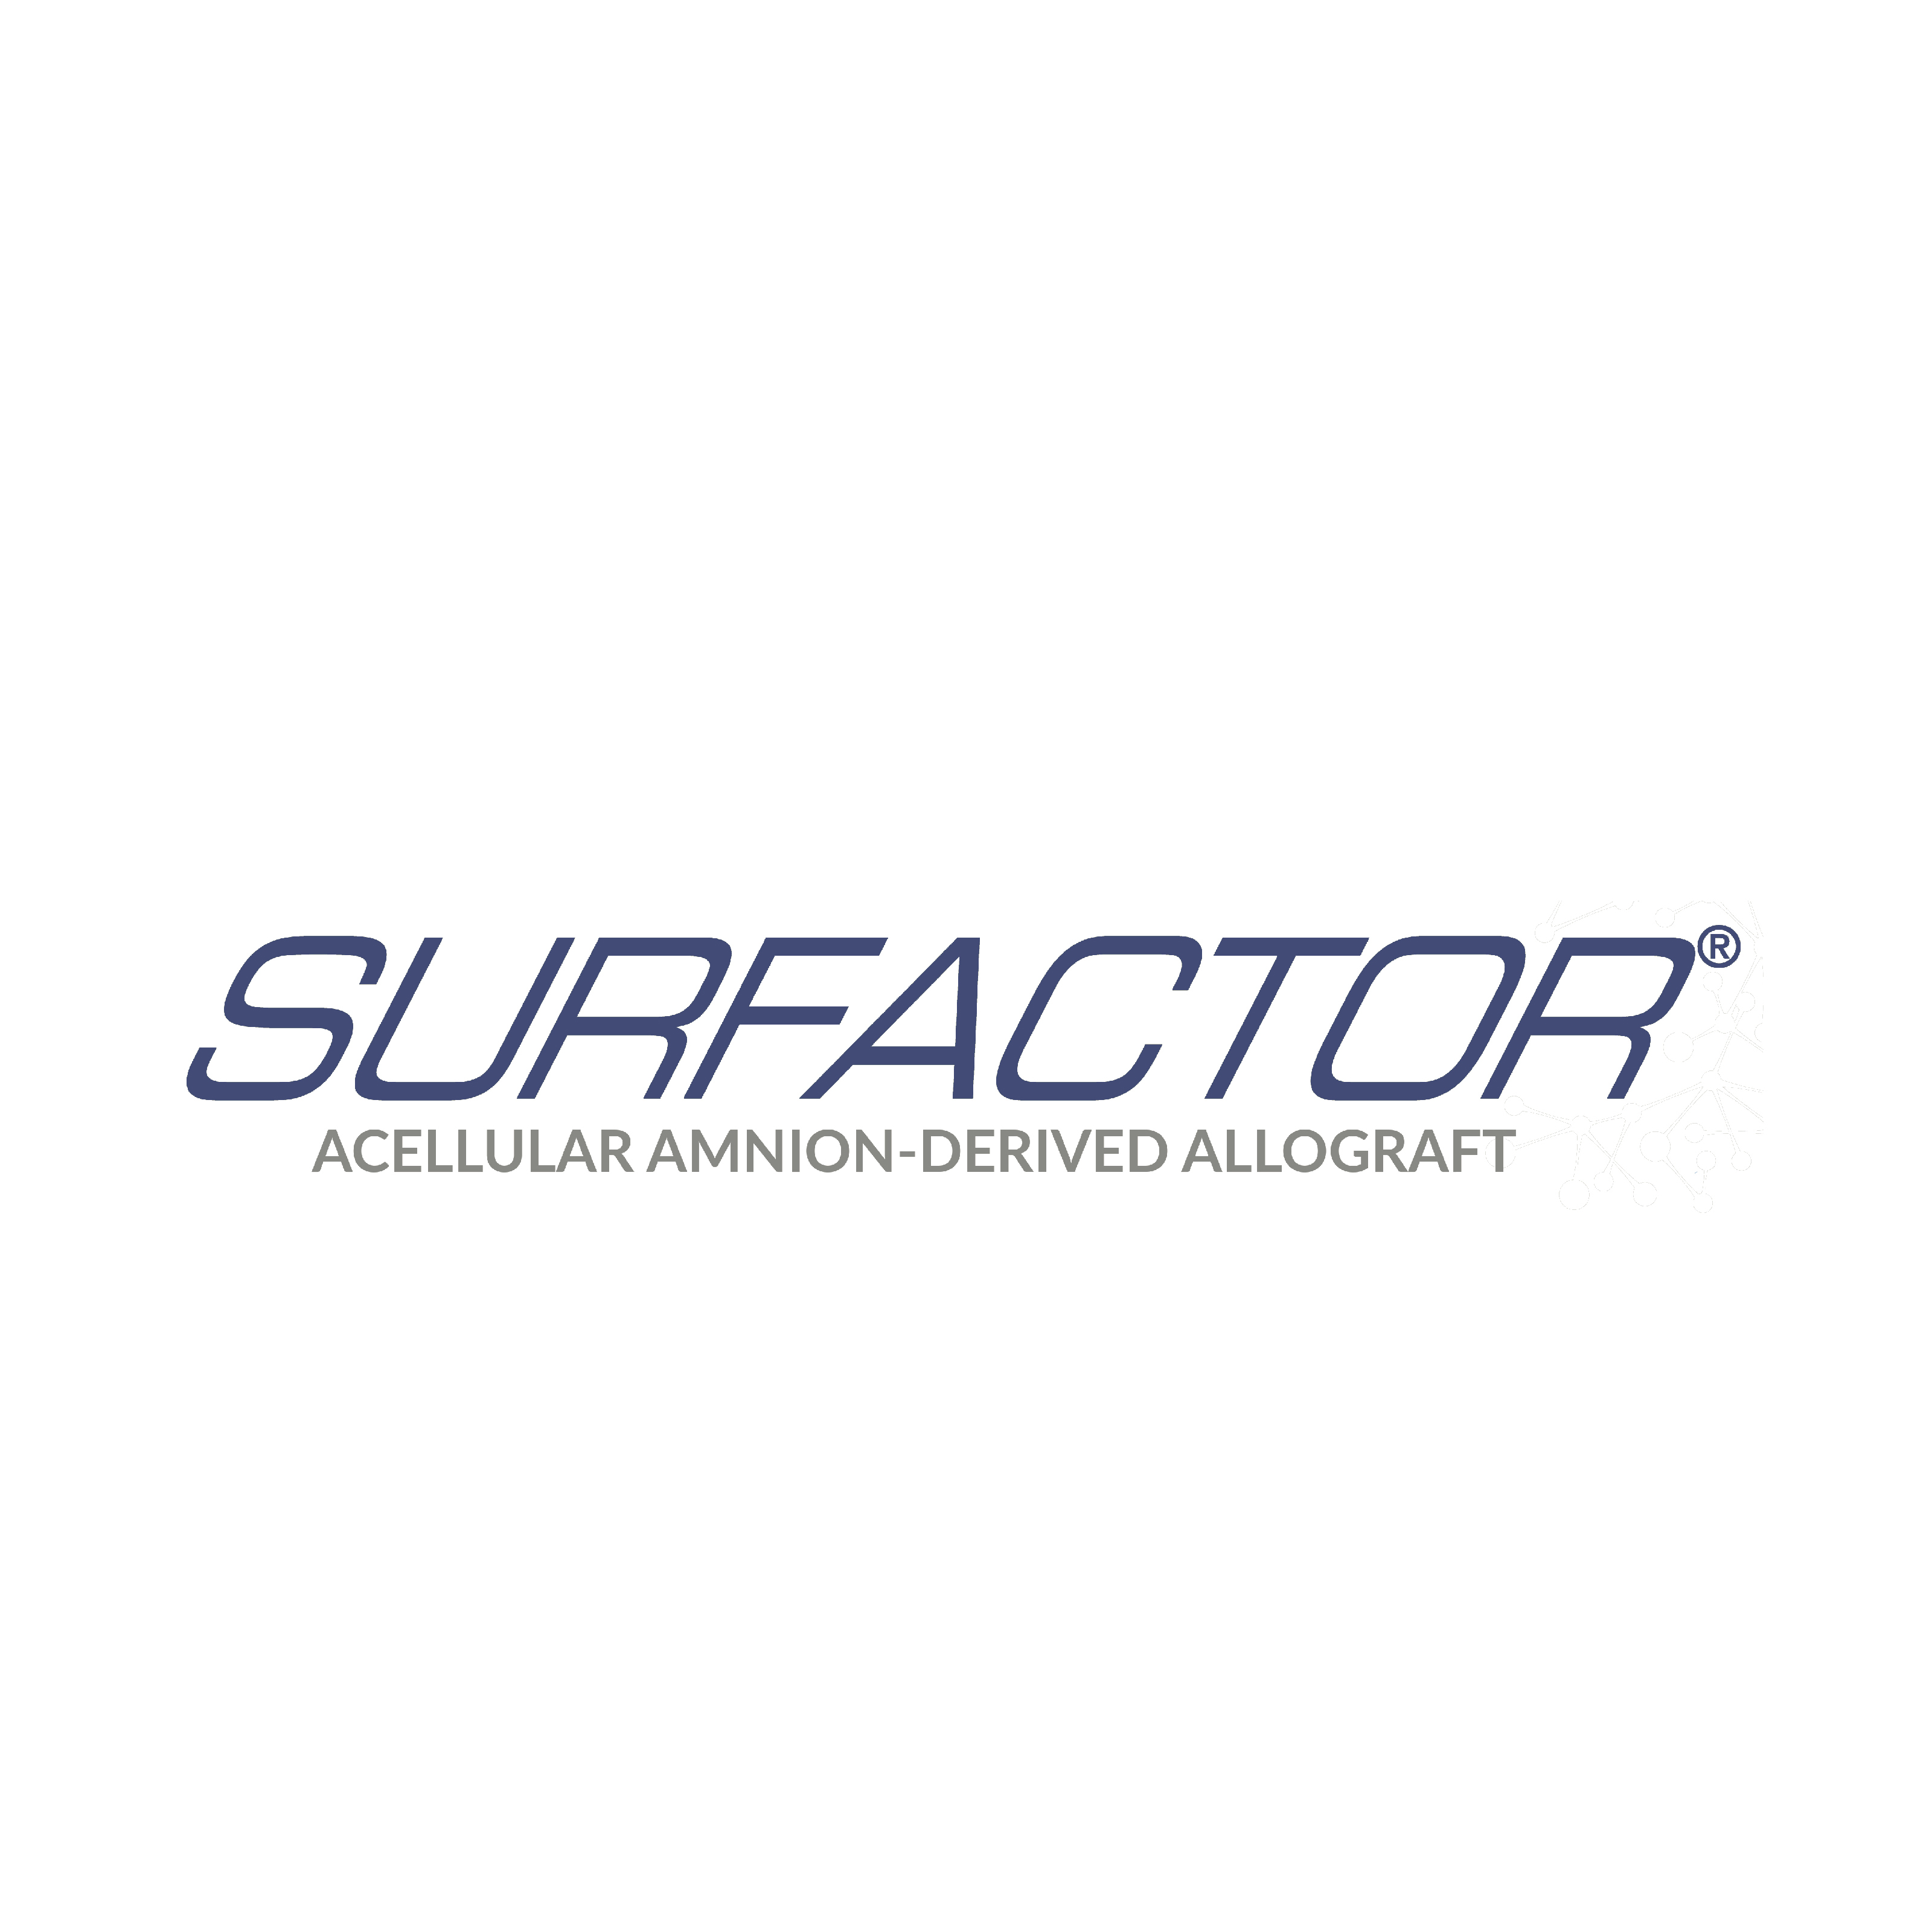 SurFactor Acellular Amnion-Derived Injectable